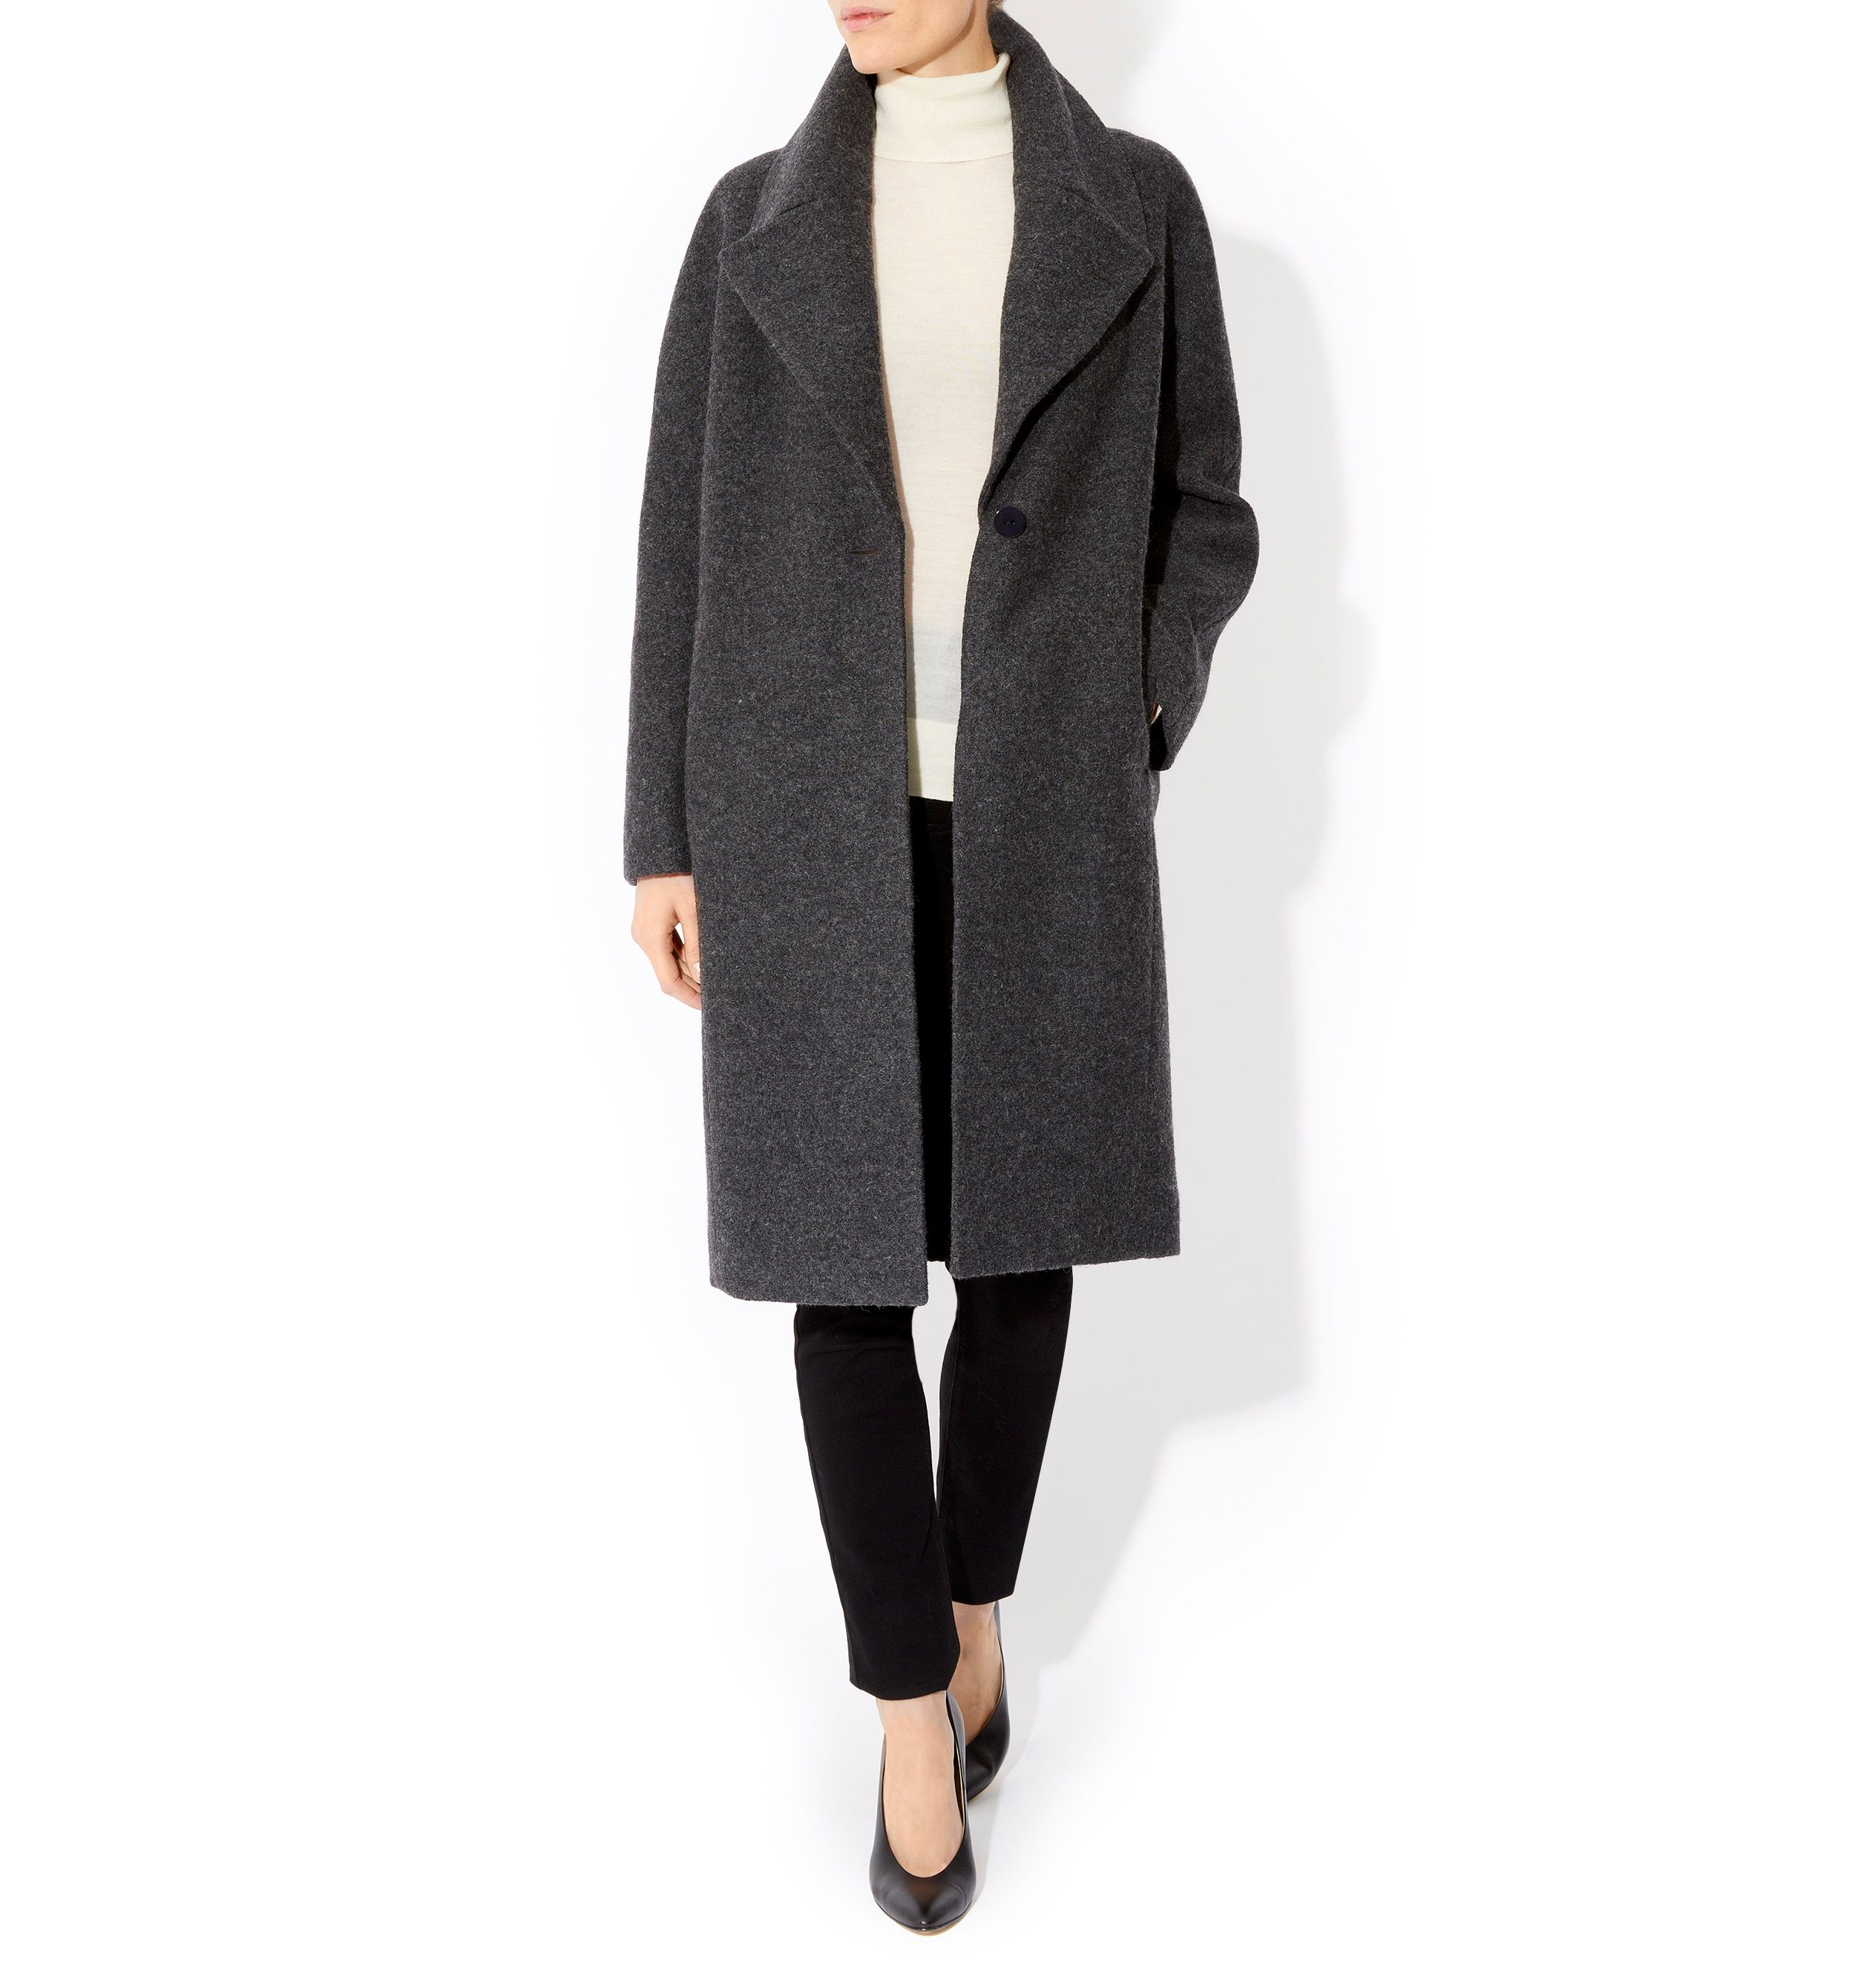 Contemporary Daisey coat